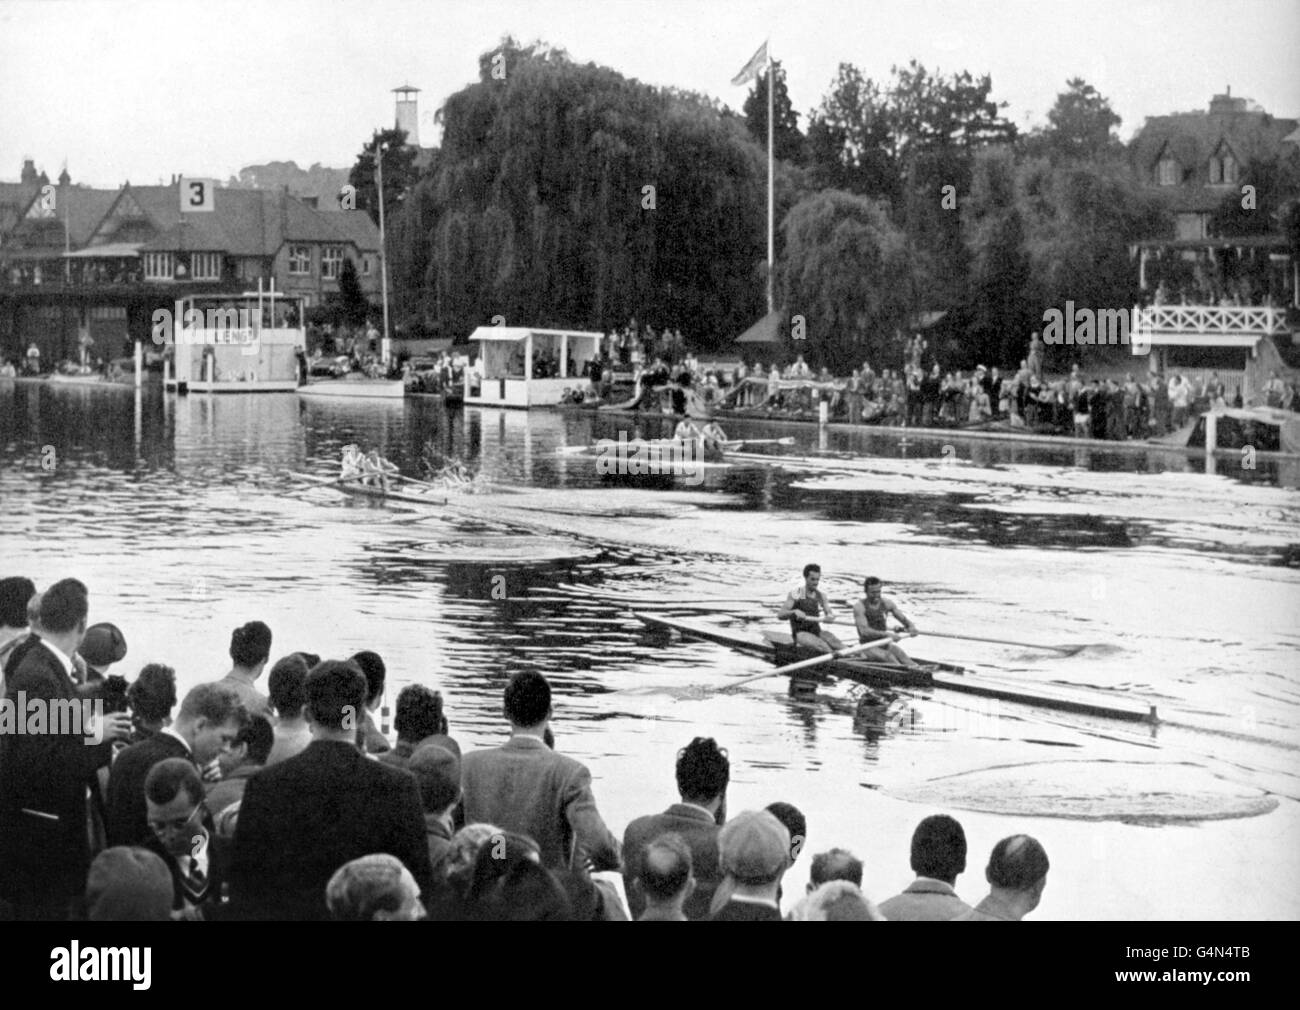 1948 London Olympic Games - Rowing - Men's Coxless Pairs - Henley Royal Regatta - Stock Image